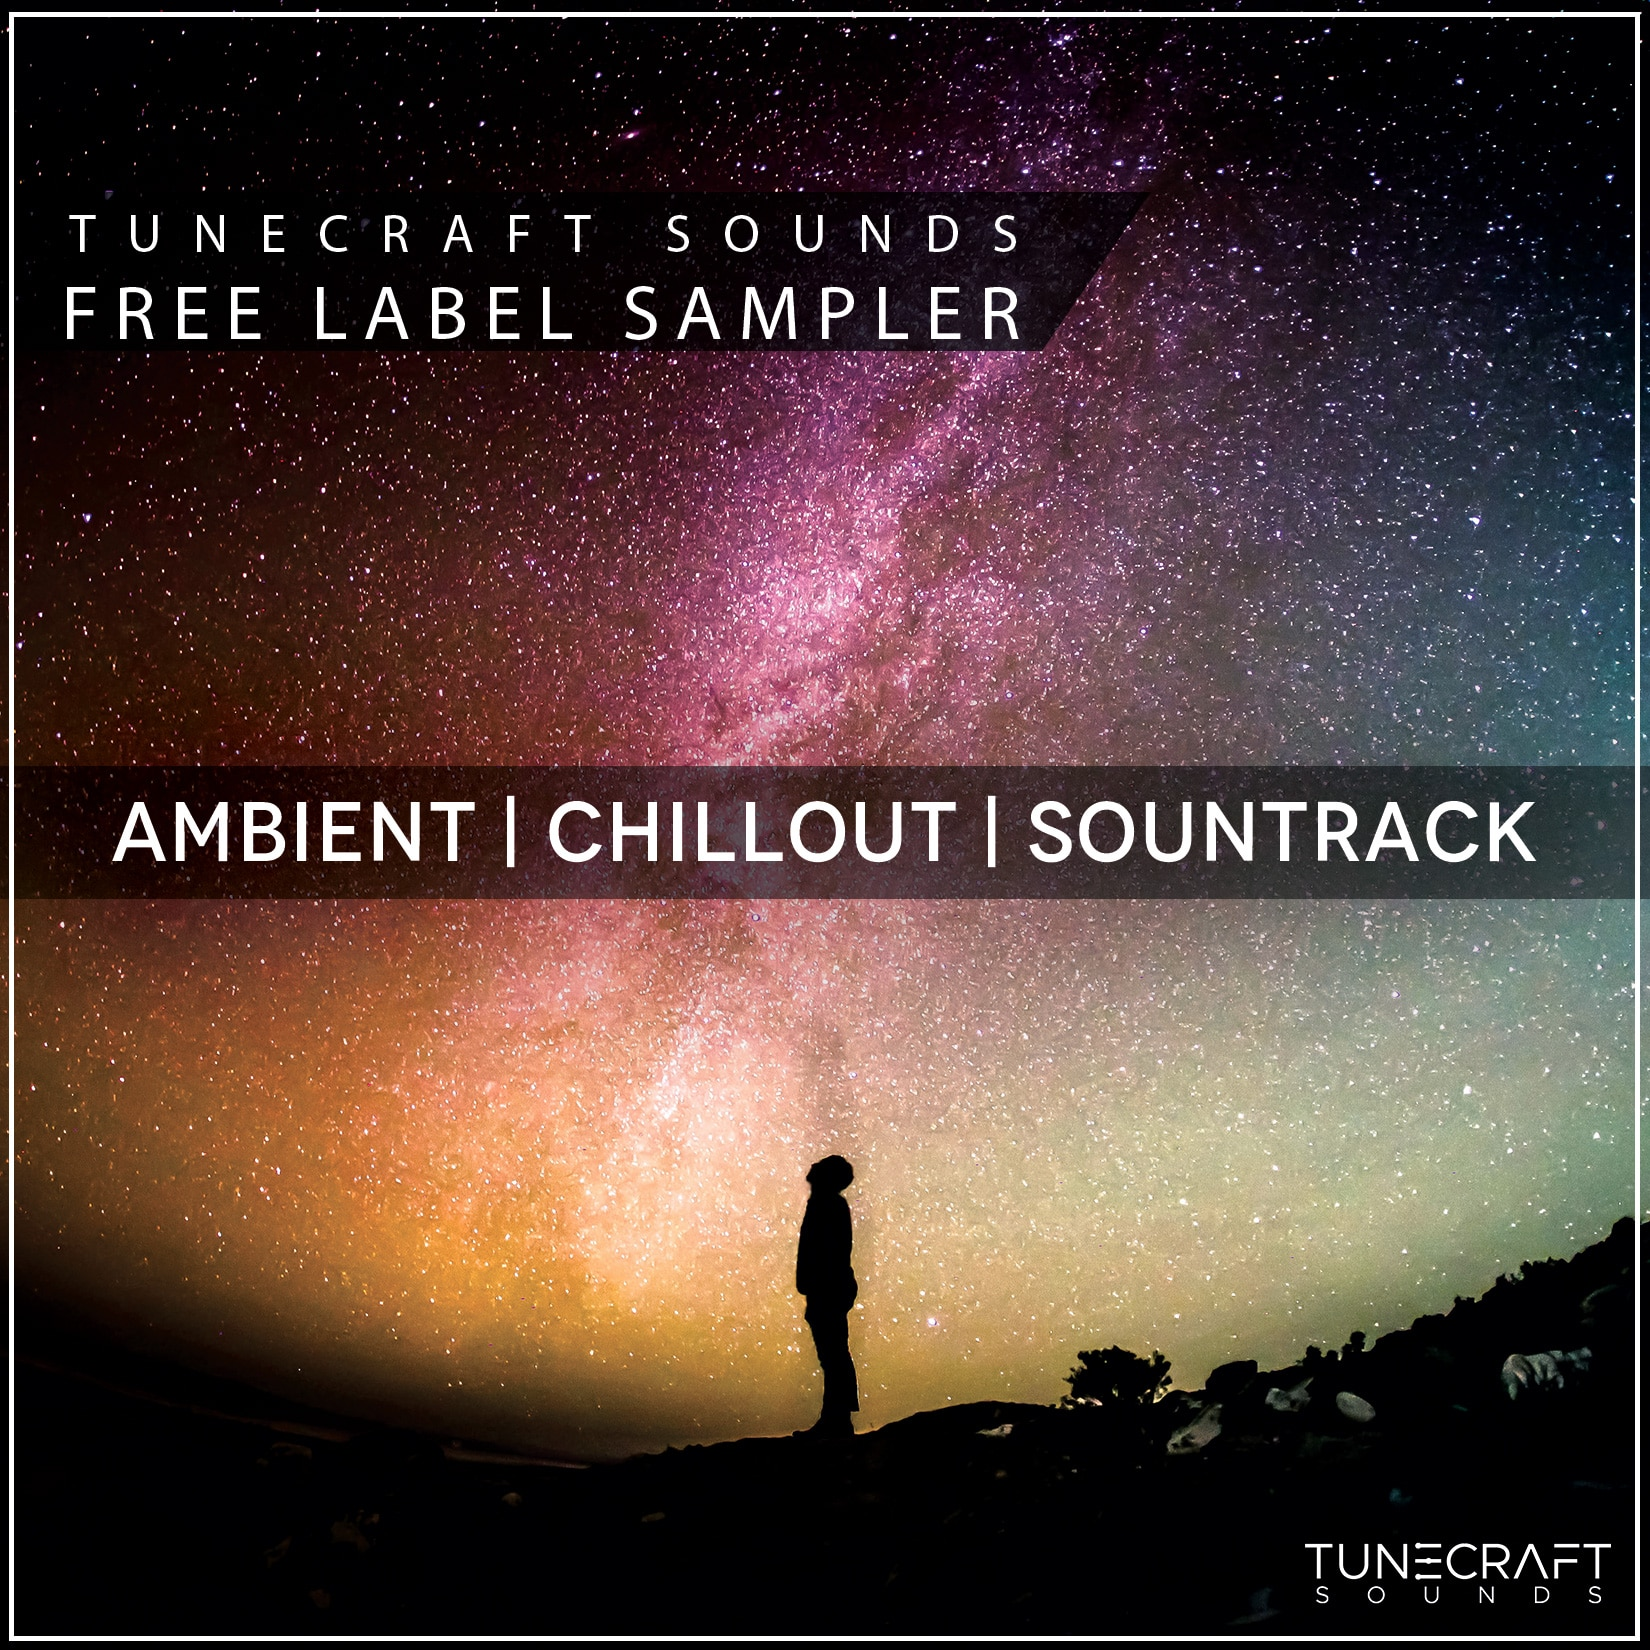 Free-Label-Sampler-Ambient-chillout-soundtrack-Tunecraft-Site-Free download